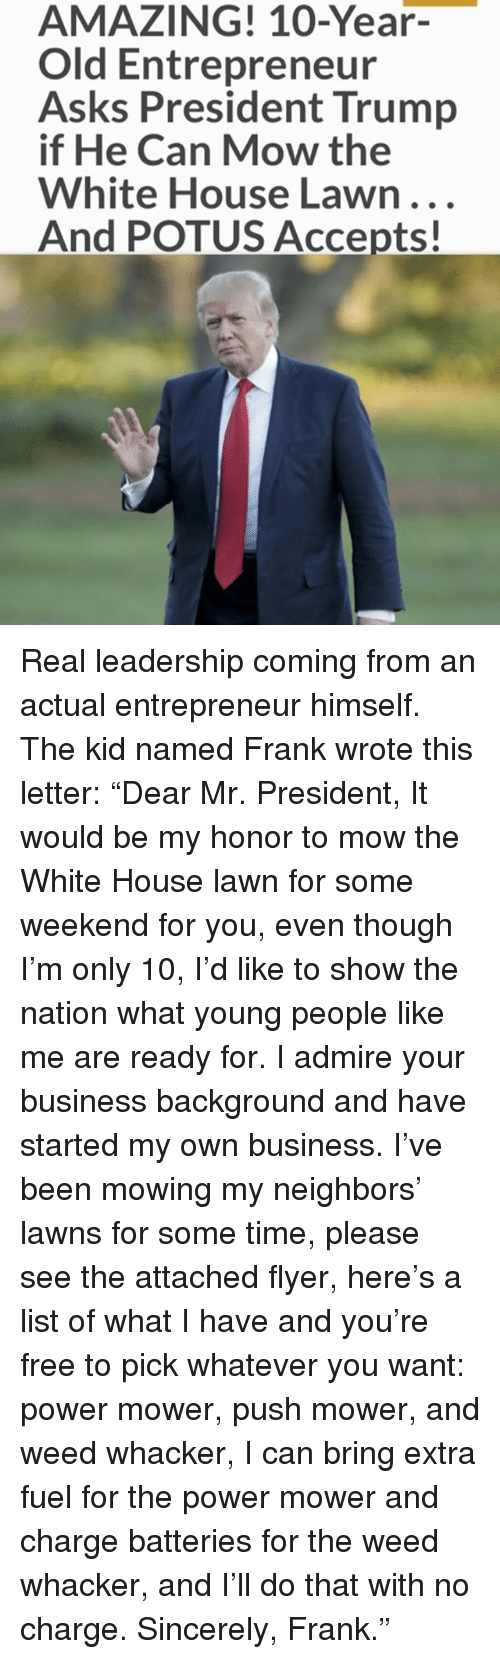 """Memes, Weed, and White House: AMAZING! 10-Year-  Old Entrepreneur  Asks President Trump  if He Can Mow the  White House Lawn...  And POTUS Accepts! Real leadership coming from an actual entrepreneur himself. The kid named Frank wrote this letter: """"Dear Mr. President, It would be my honor to mow the White House lawn for some weekend for you, even though I'm only 10, I'd like to show the nation what young people like me are ready for. I admire your business background and have started my own business. I've been mowing my neighbors' lawns for some time, please see the attached flyer, here's a list of what I have and you're free to pick whatever you want: power mower, push mower, and weed whacker, I can bring extra fuel for the power mower and charge batteries for the weed whacker, and I'll do that with no charge. Sincerely, Frank."""""""